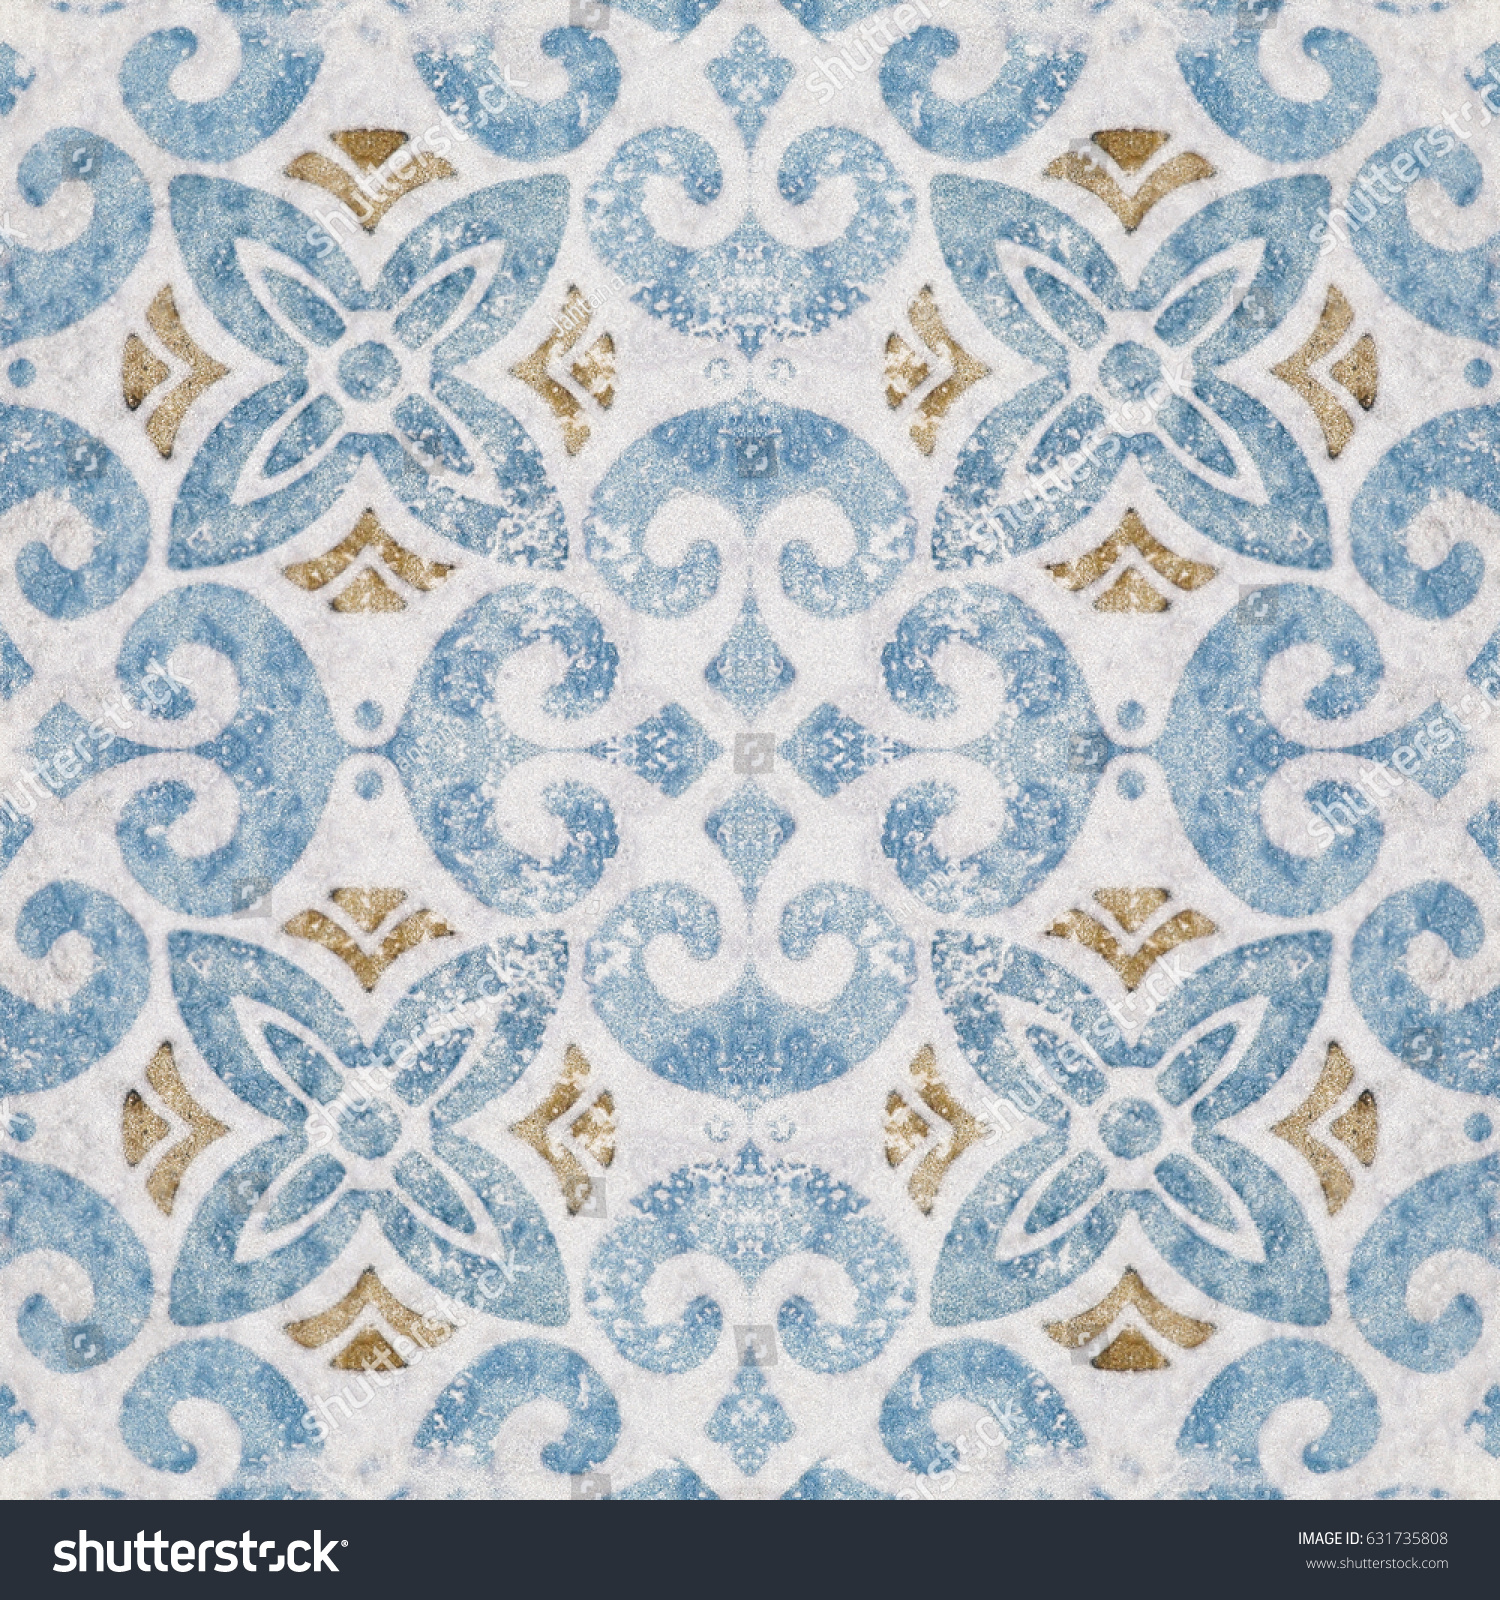 Old Ceramic Tile Wall Patterns Park Stock Photo (Royalty Free ...